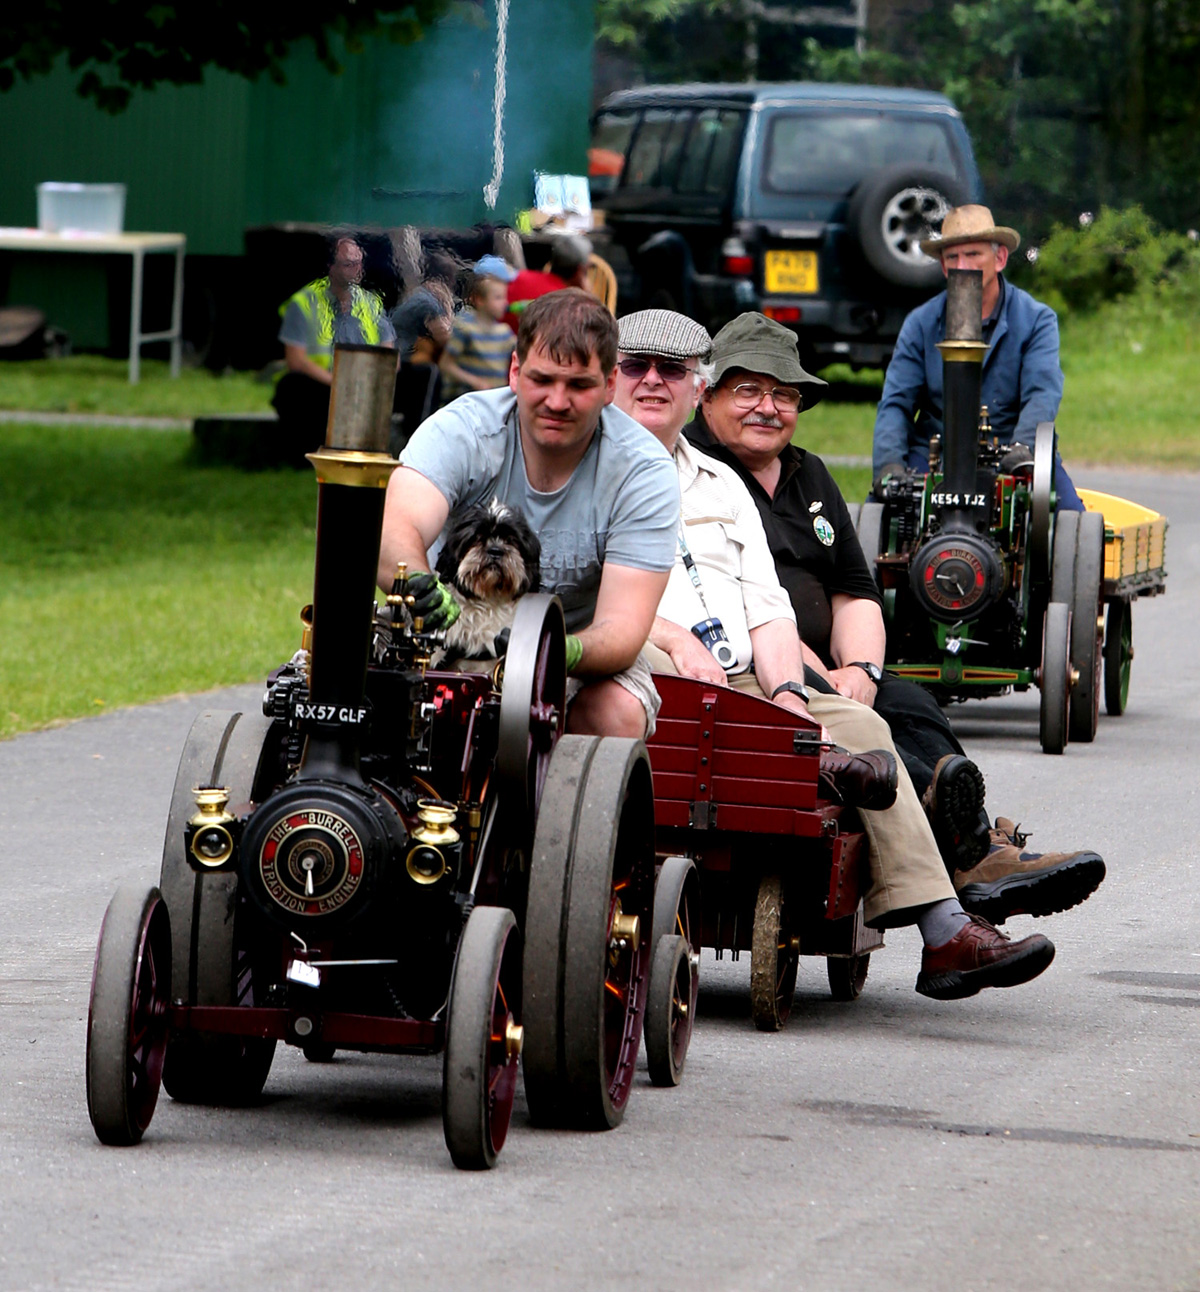 Historic steam traction engines on show at event